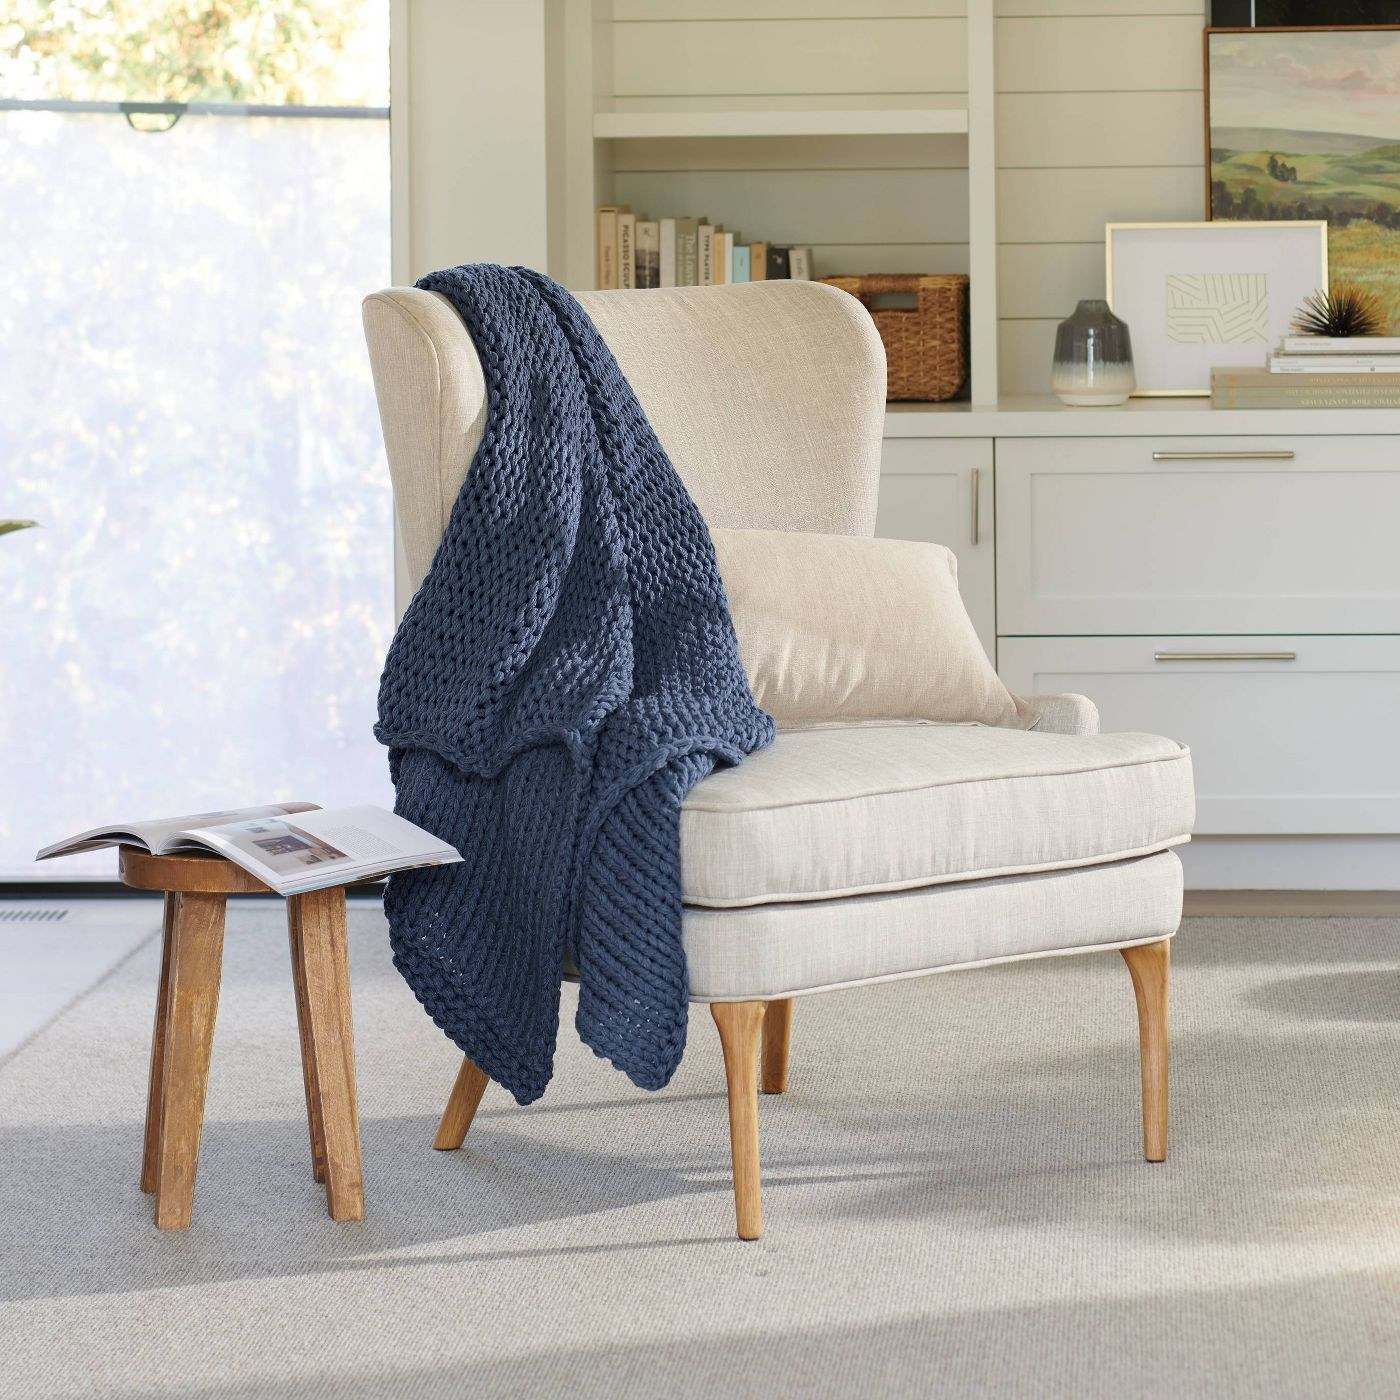 blue chunky knit blanket draped over a white accent chair